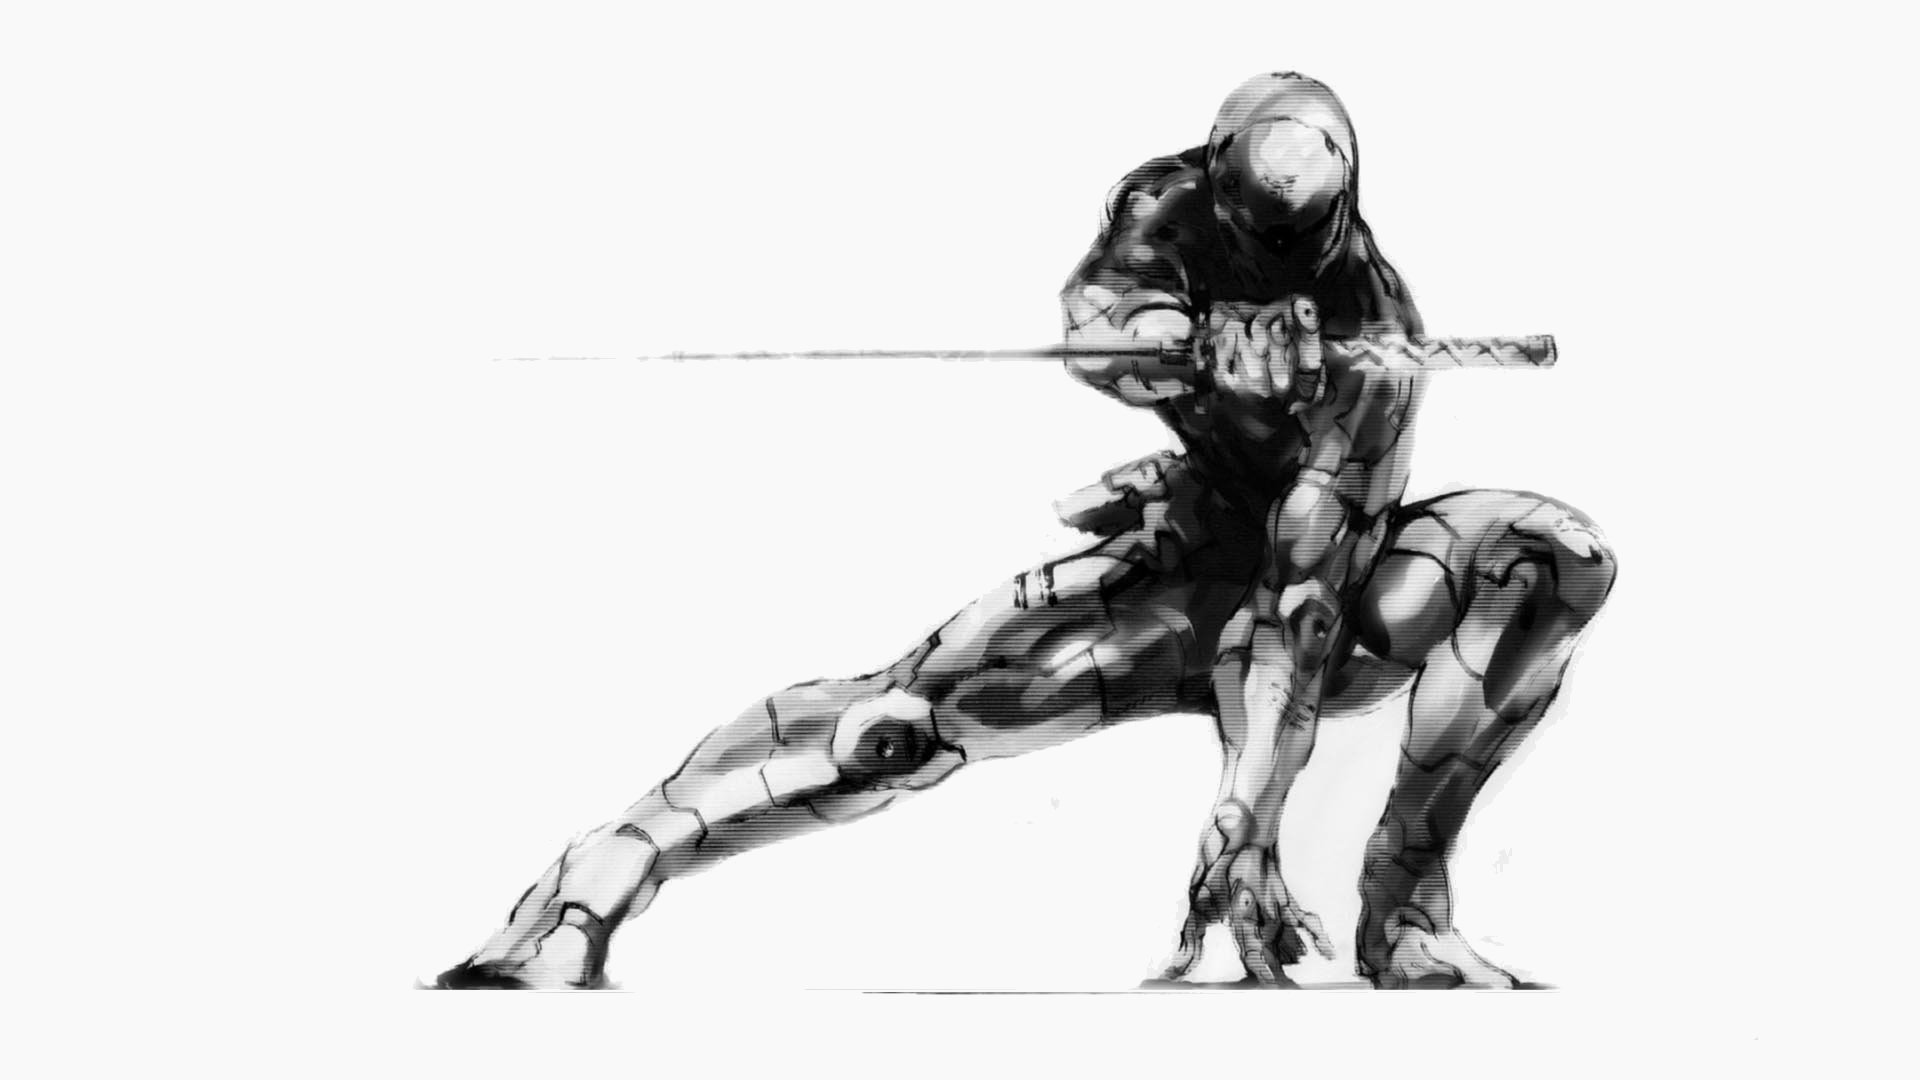 Download 1080p Metal Gear Solid Mgs Pc Wallpaper Id 121023 For Free